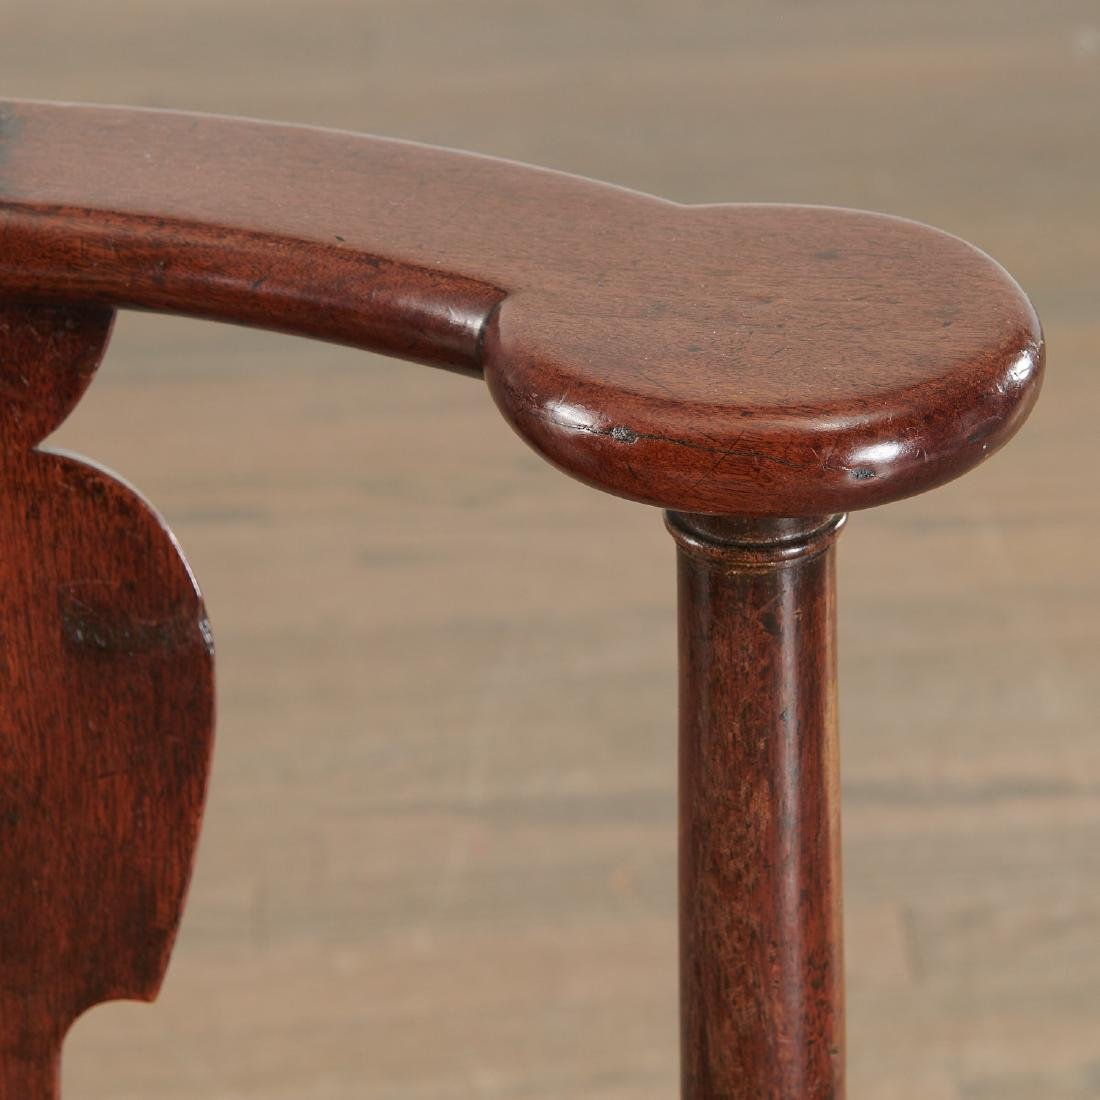 Chippendale carved walnut corner chair - 5